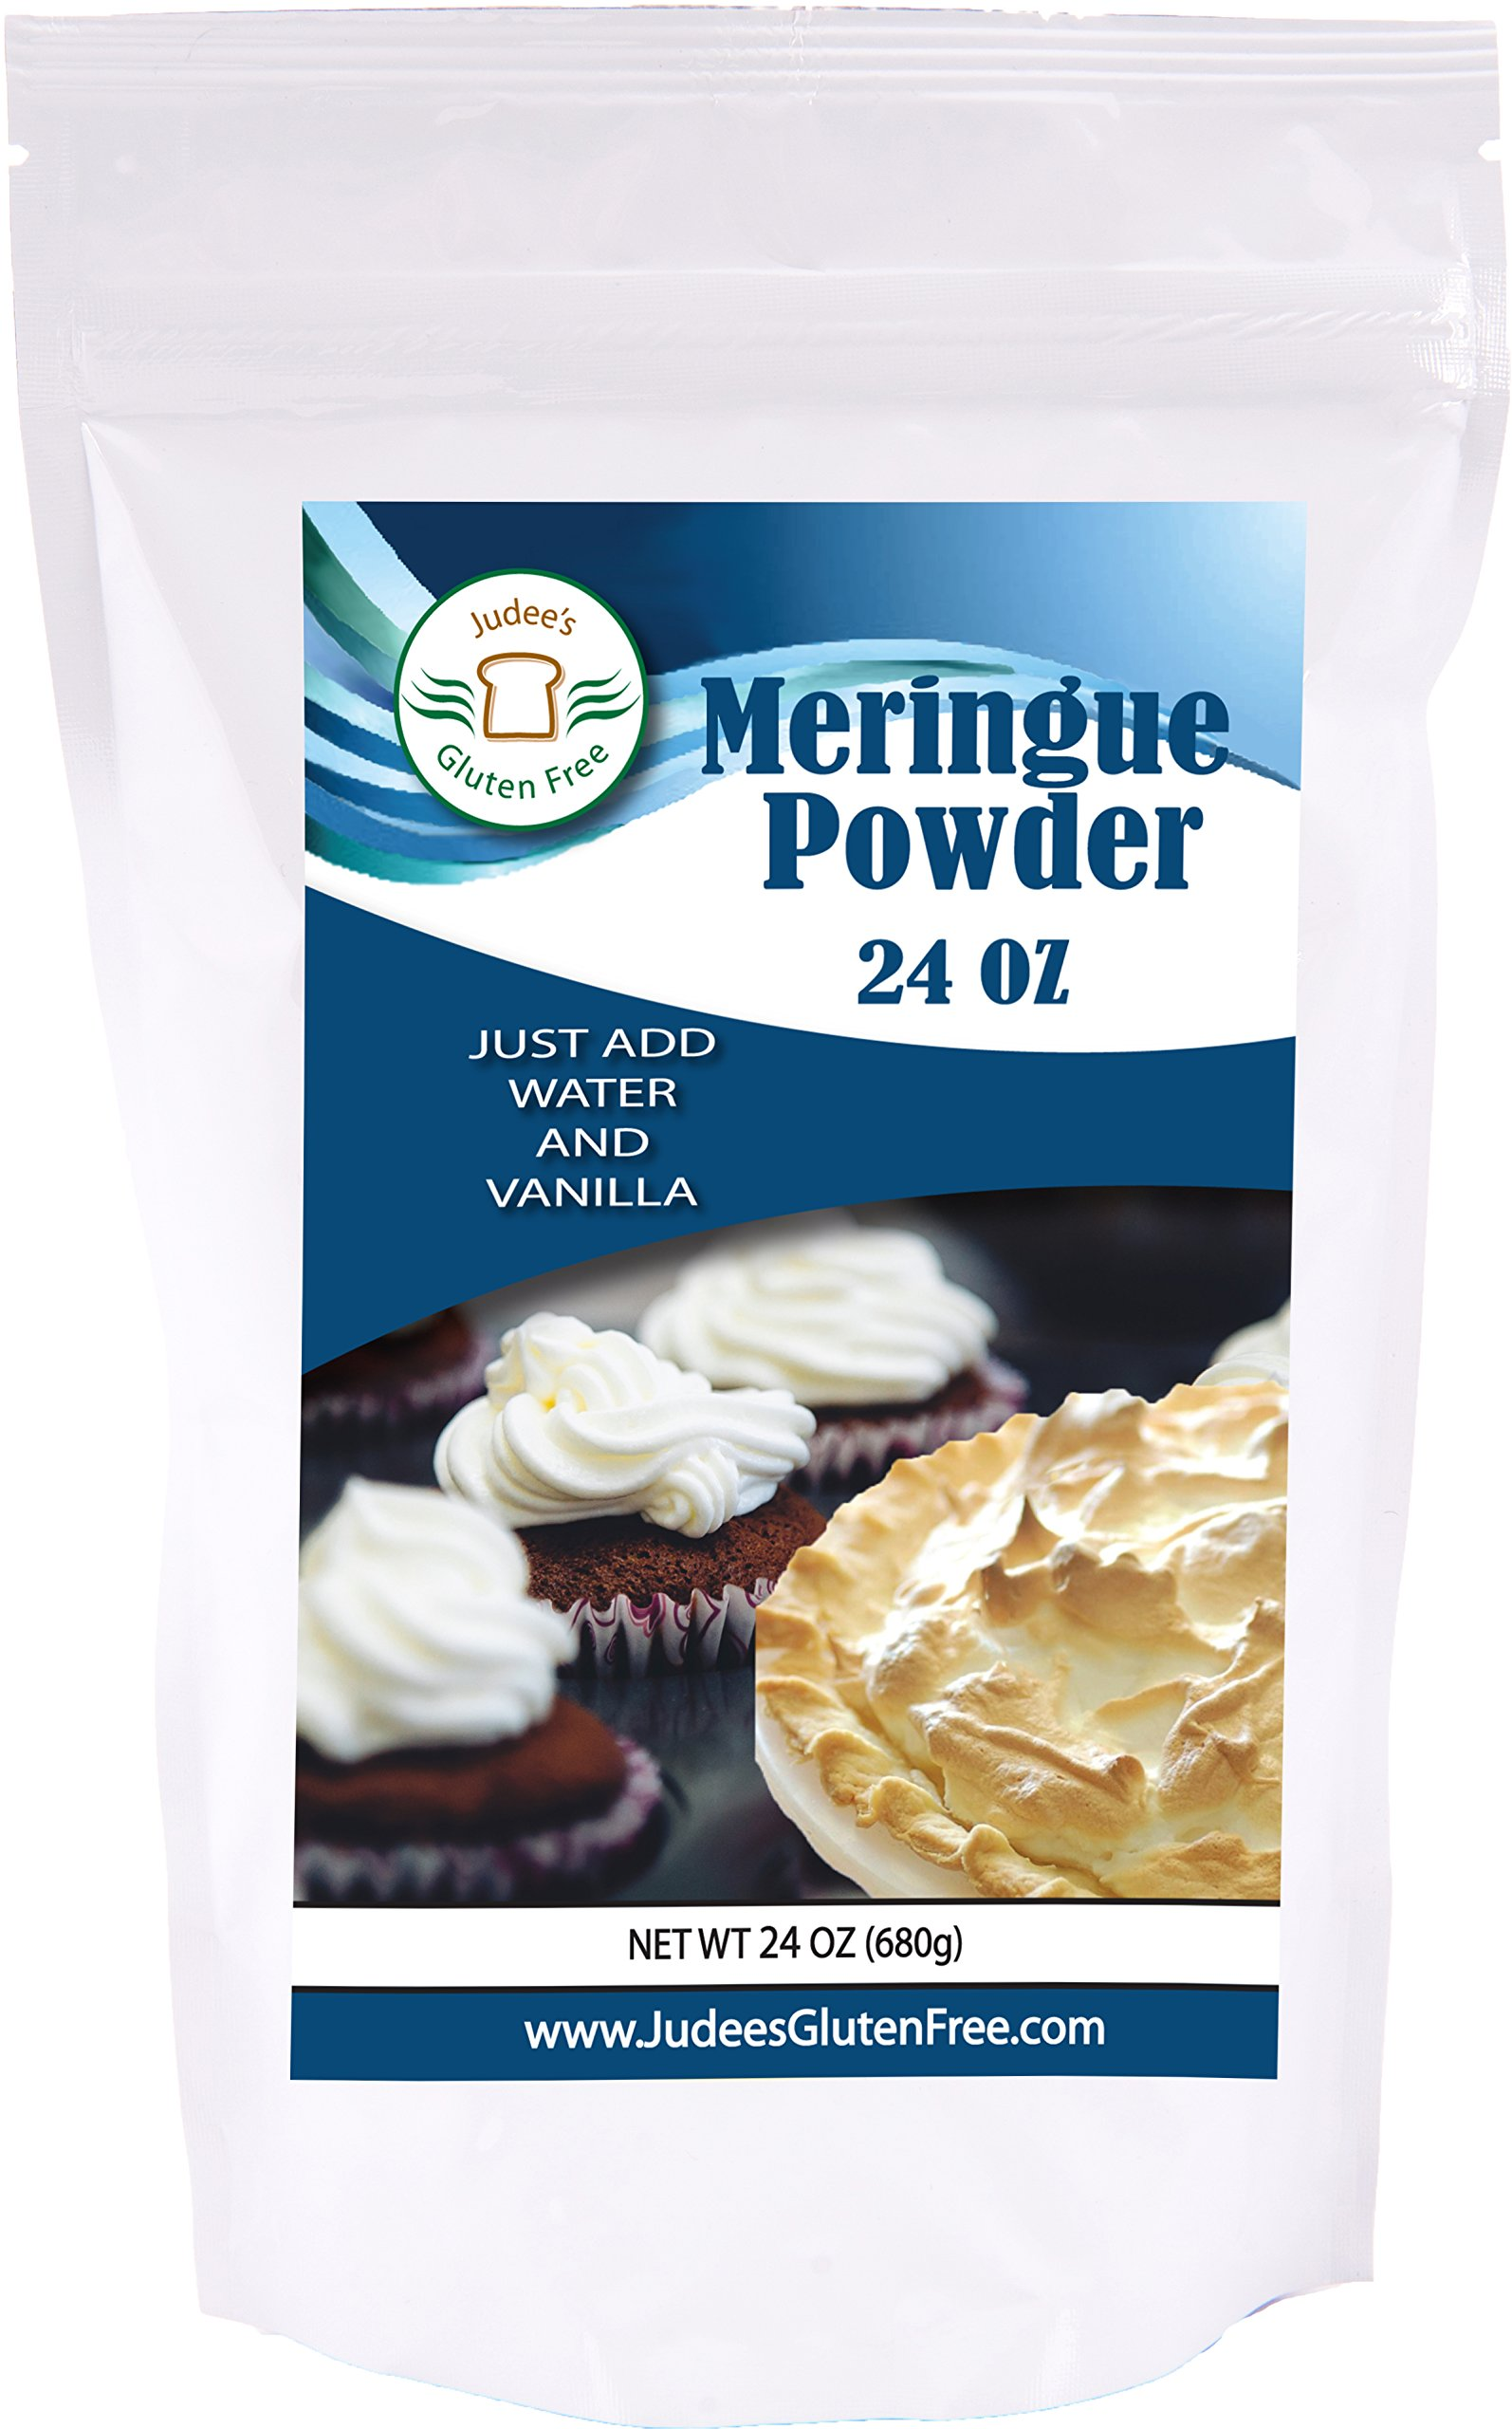 Meringue Powder (24 Oz): No Preservatives: ideal for Cookies, Pies, and Frosting: Made in the USA in a Dedicated Gluten and Nut Free Facility